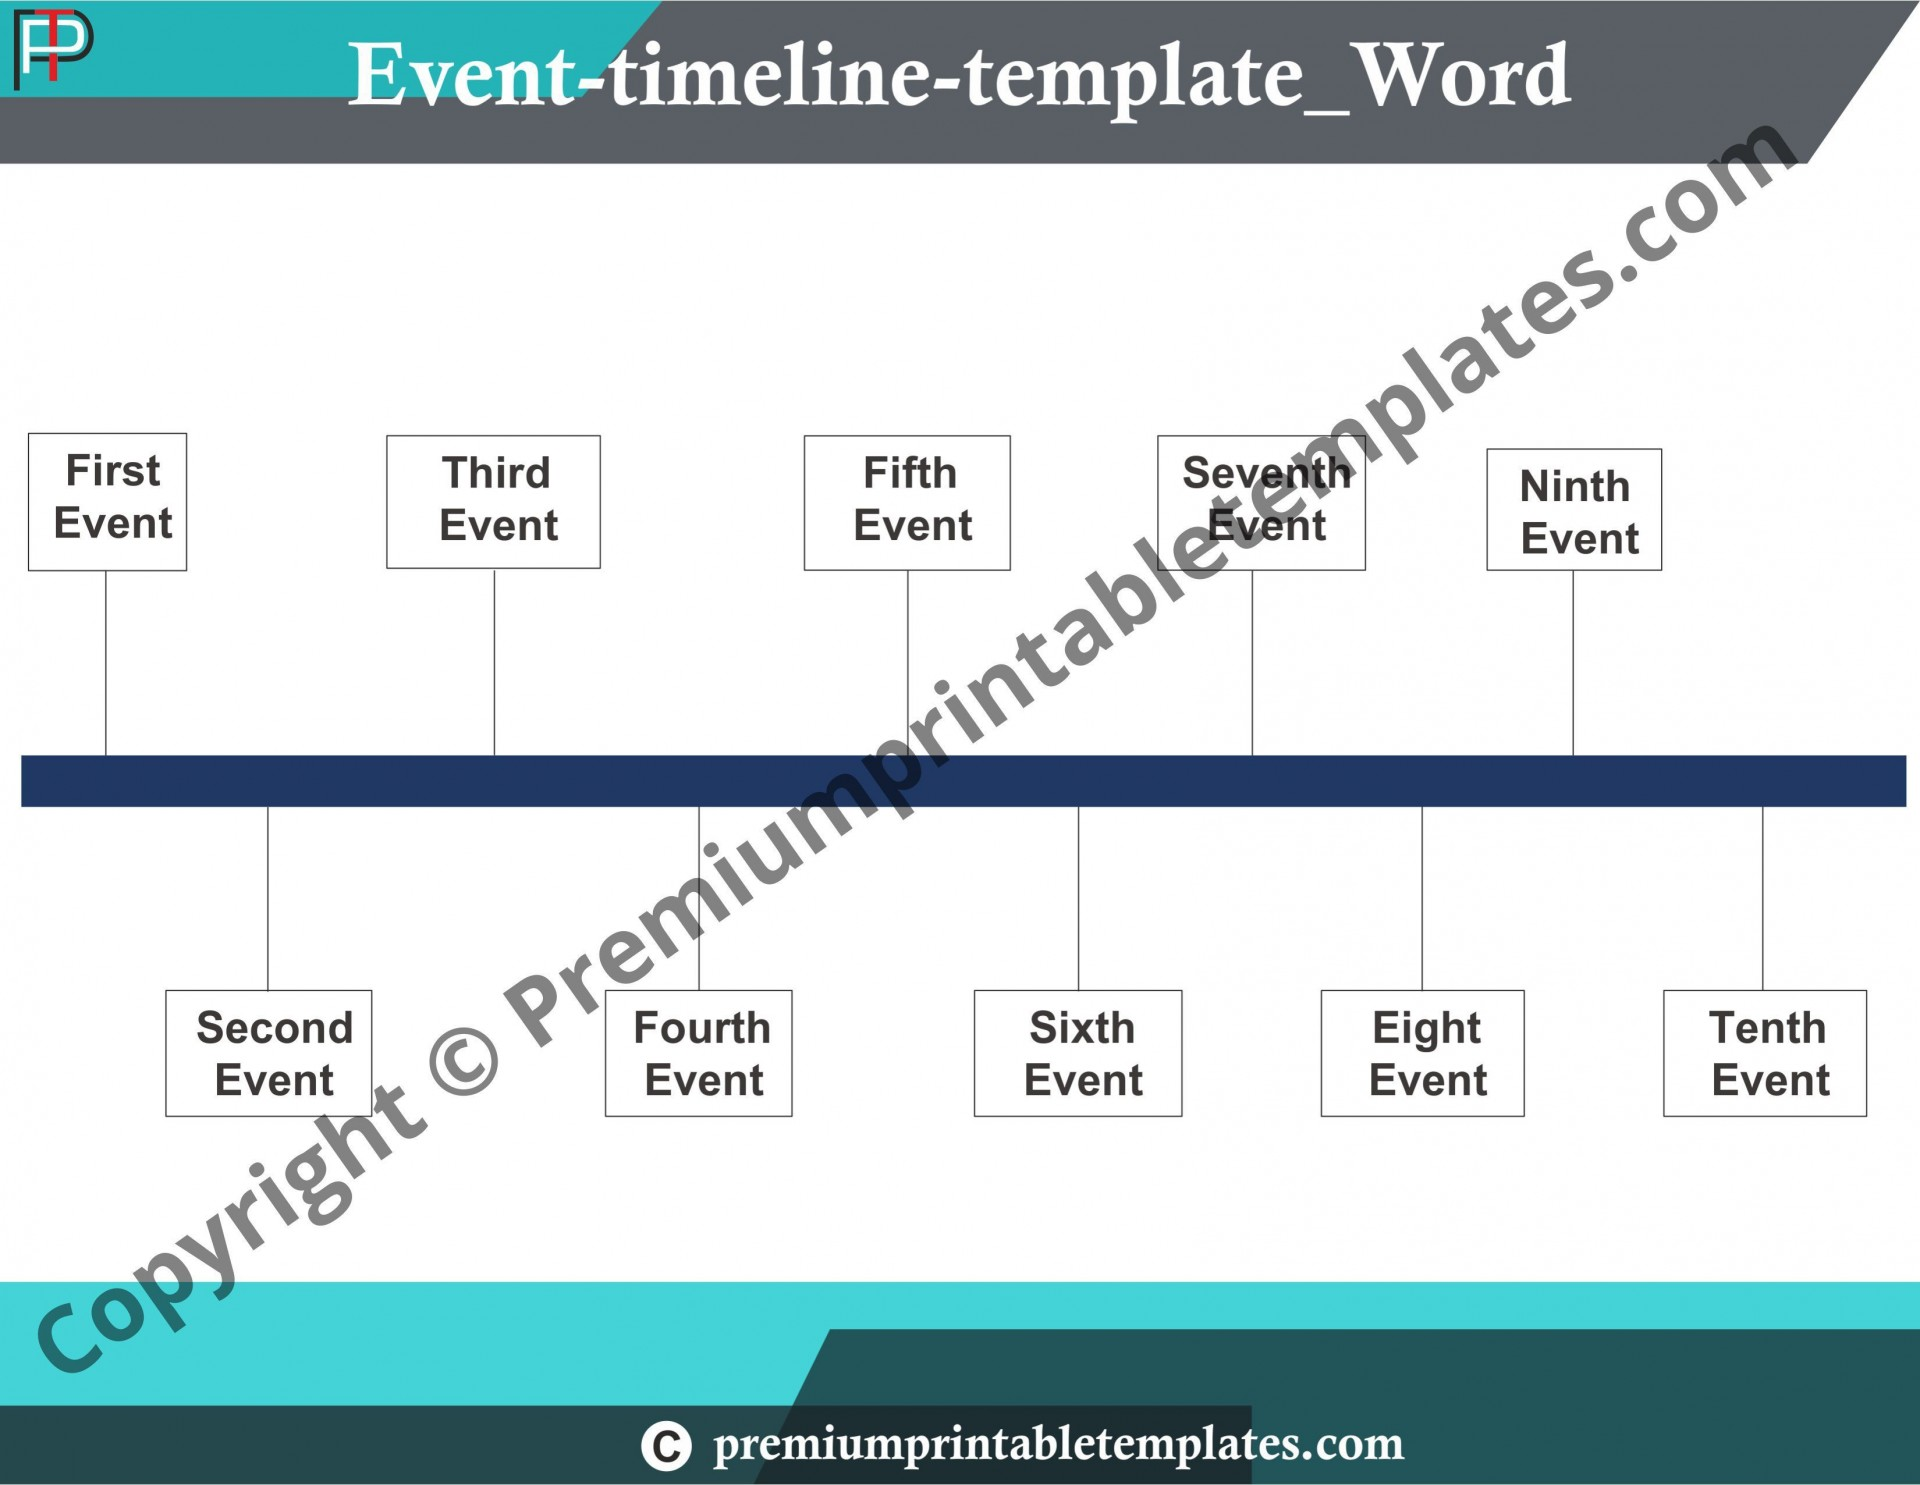 004 Staggering Timeline Template For Word Highest Clarity  Wordpres Free1920